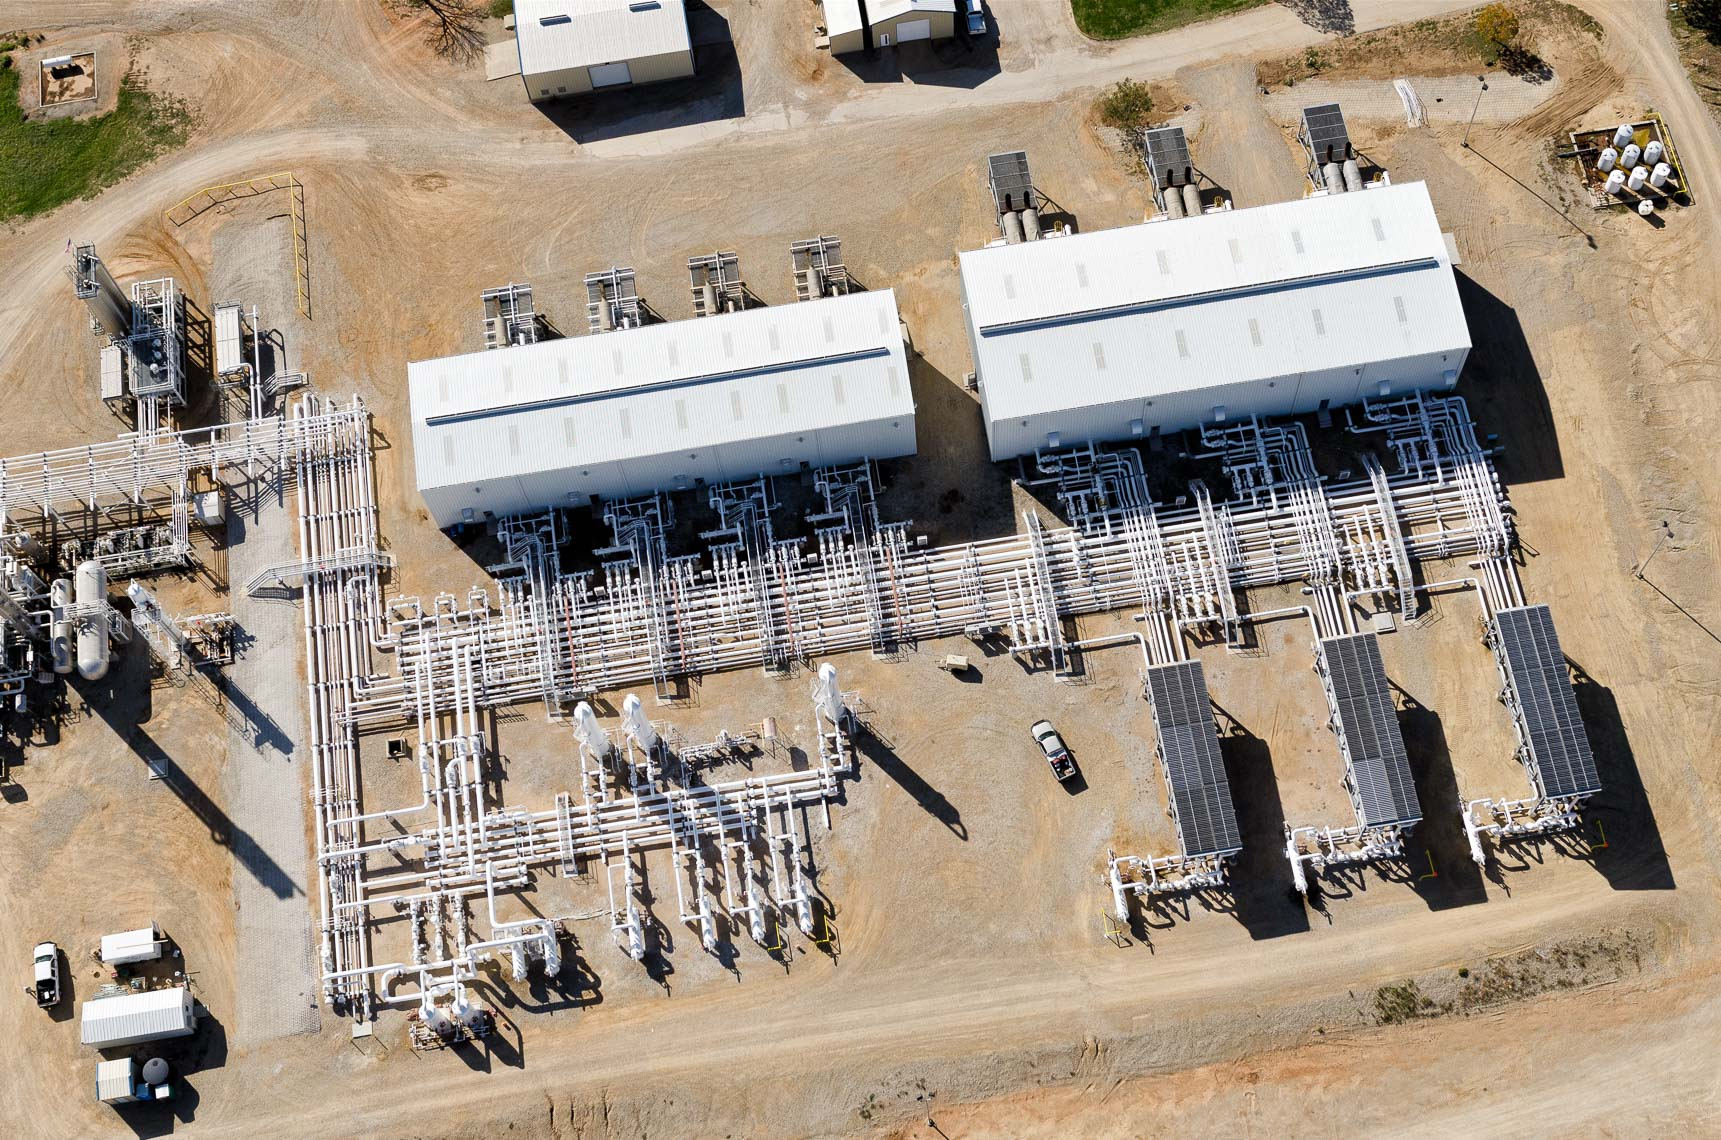 NorTex Worsham-Steed Facility - Aerial View